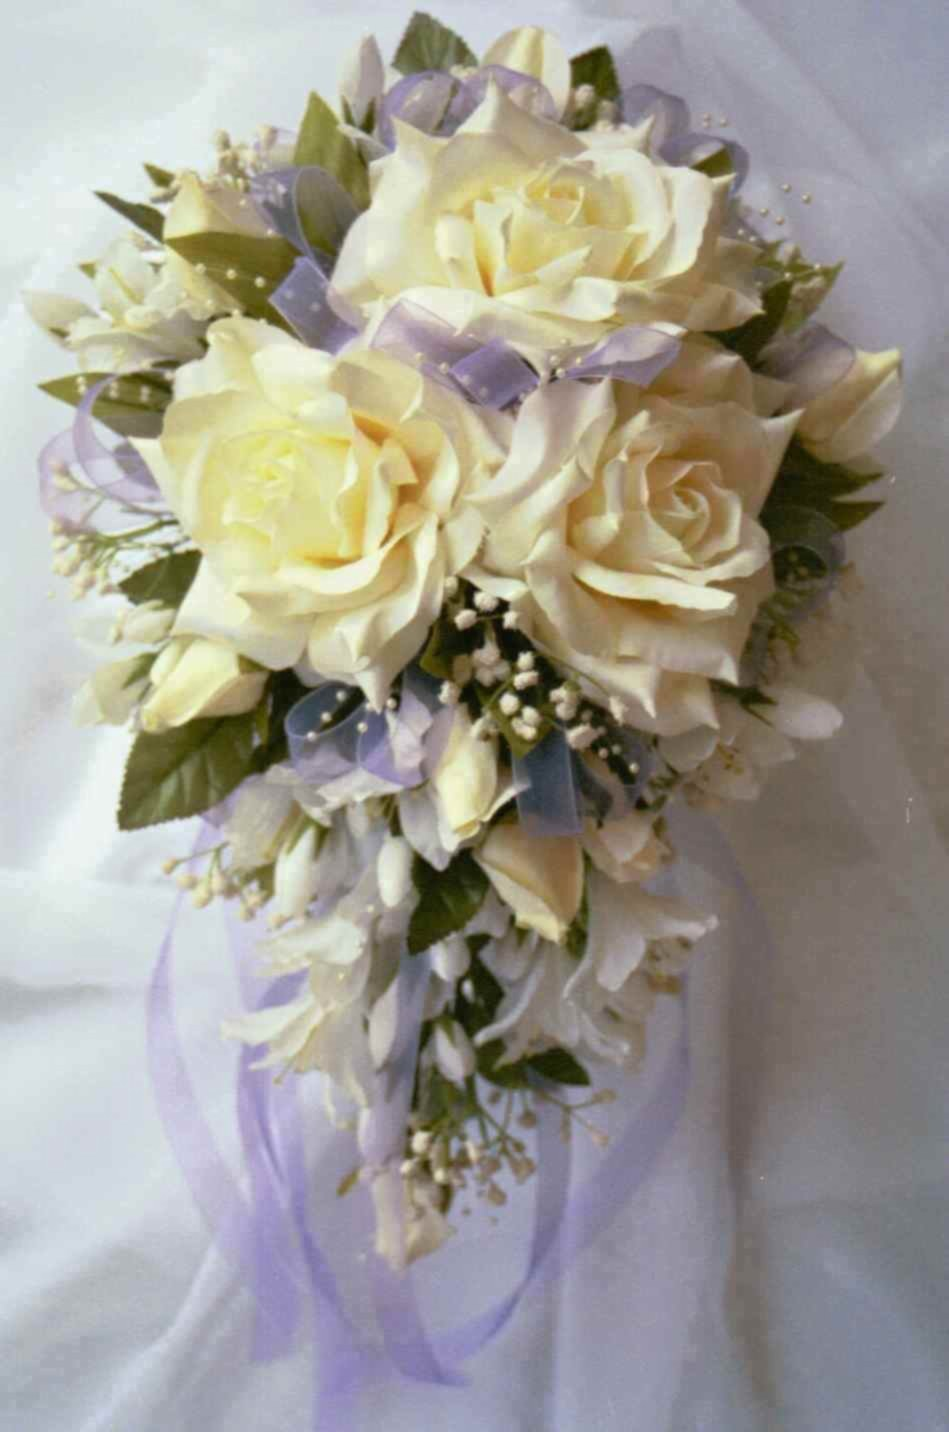 flower bouquet wedding about marriage marriage flower bouquet 2013 wedding 4139